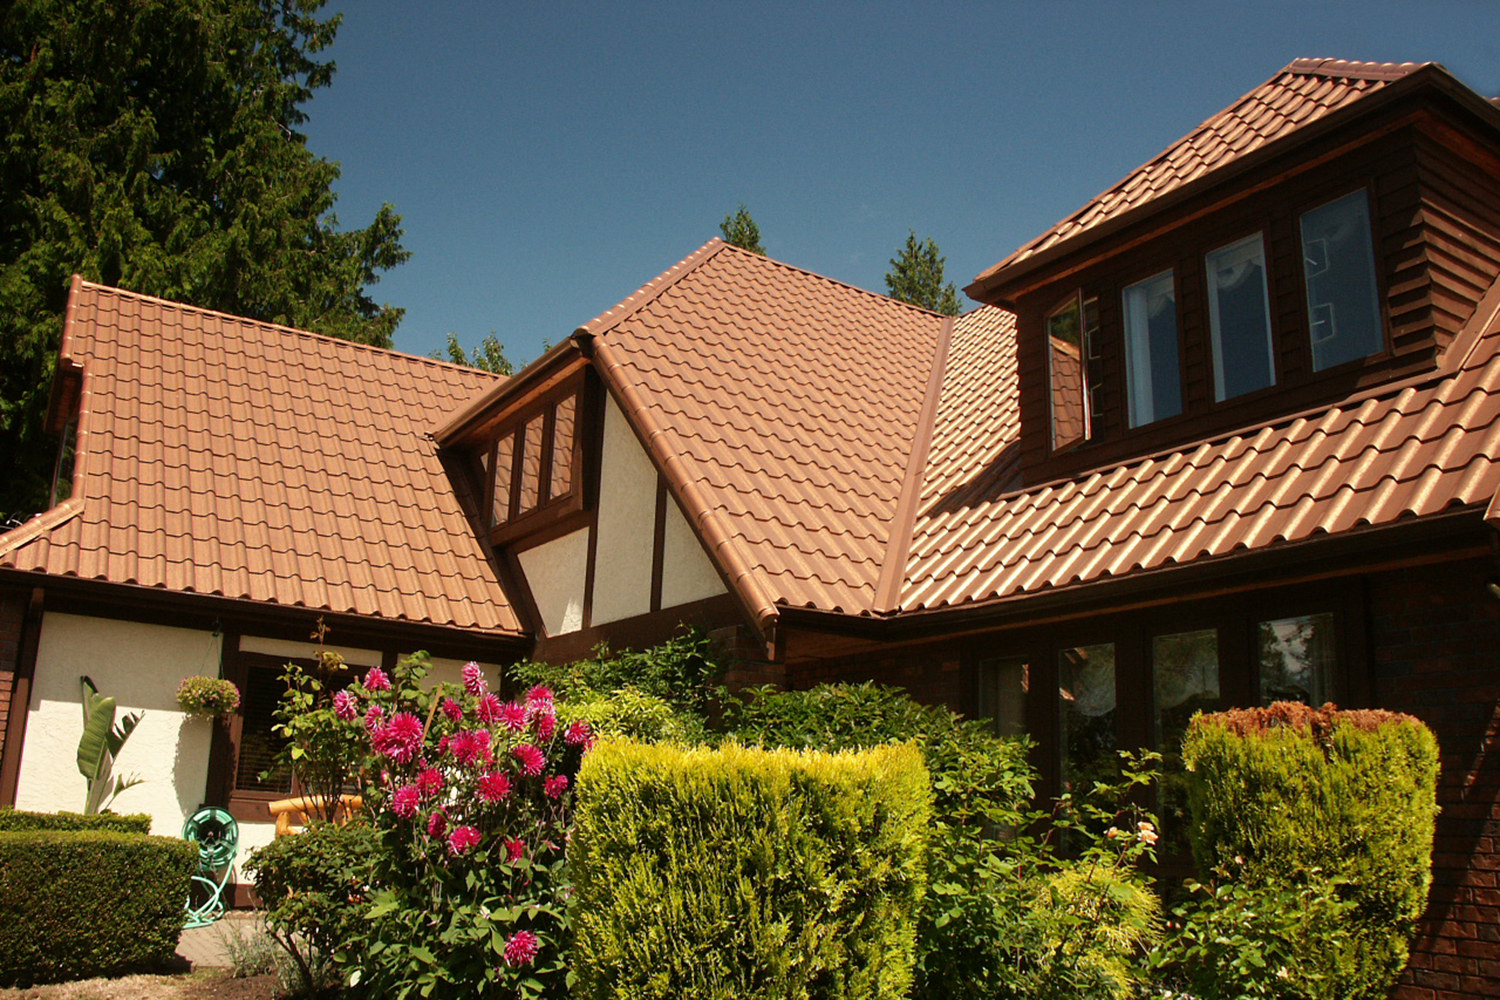 aged copper metal mediterranean tile roof shed roof tudor house